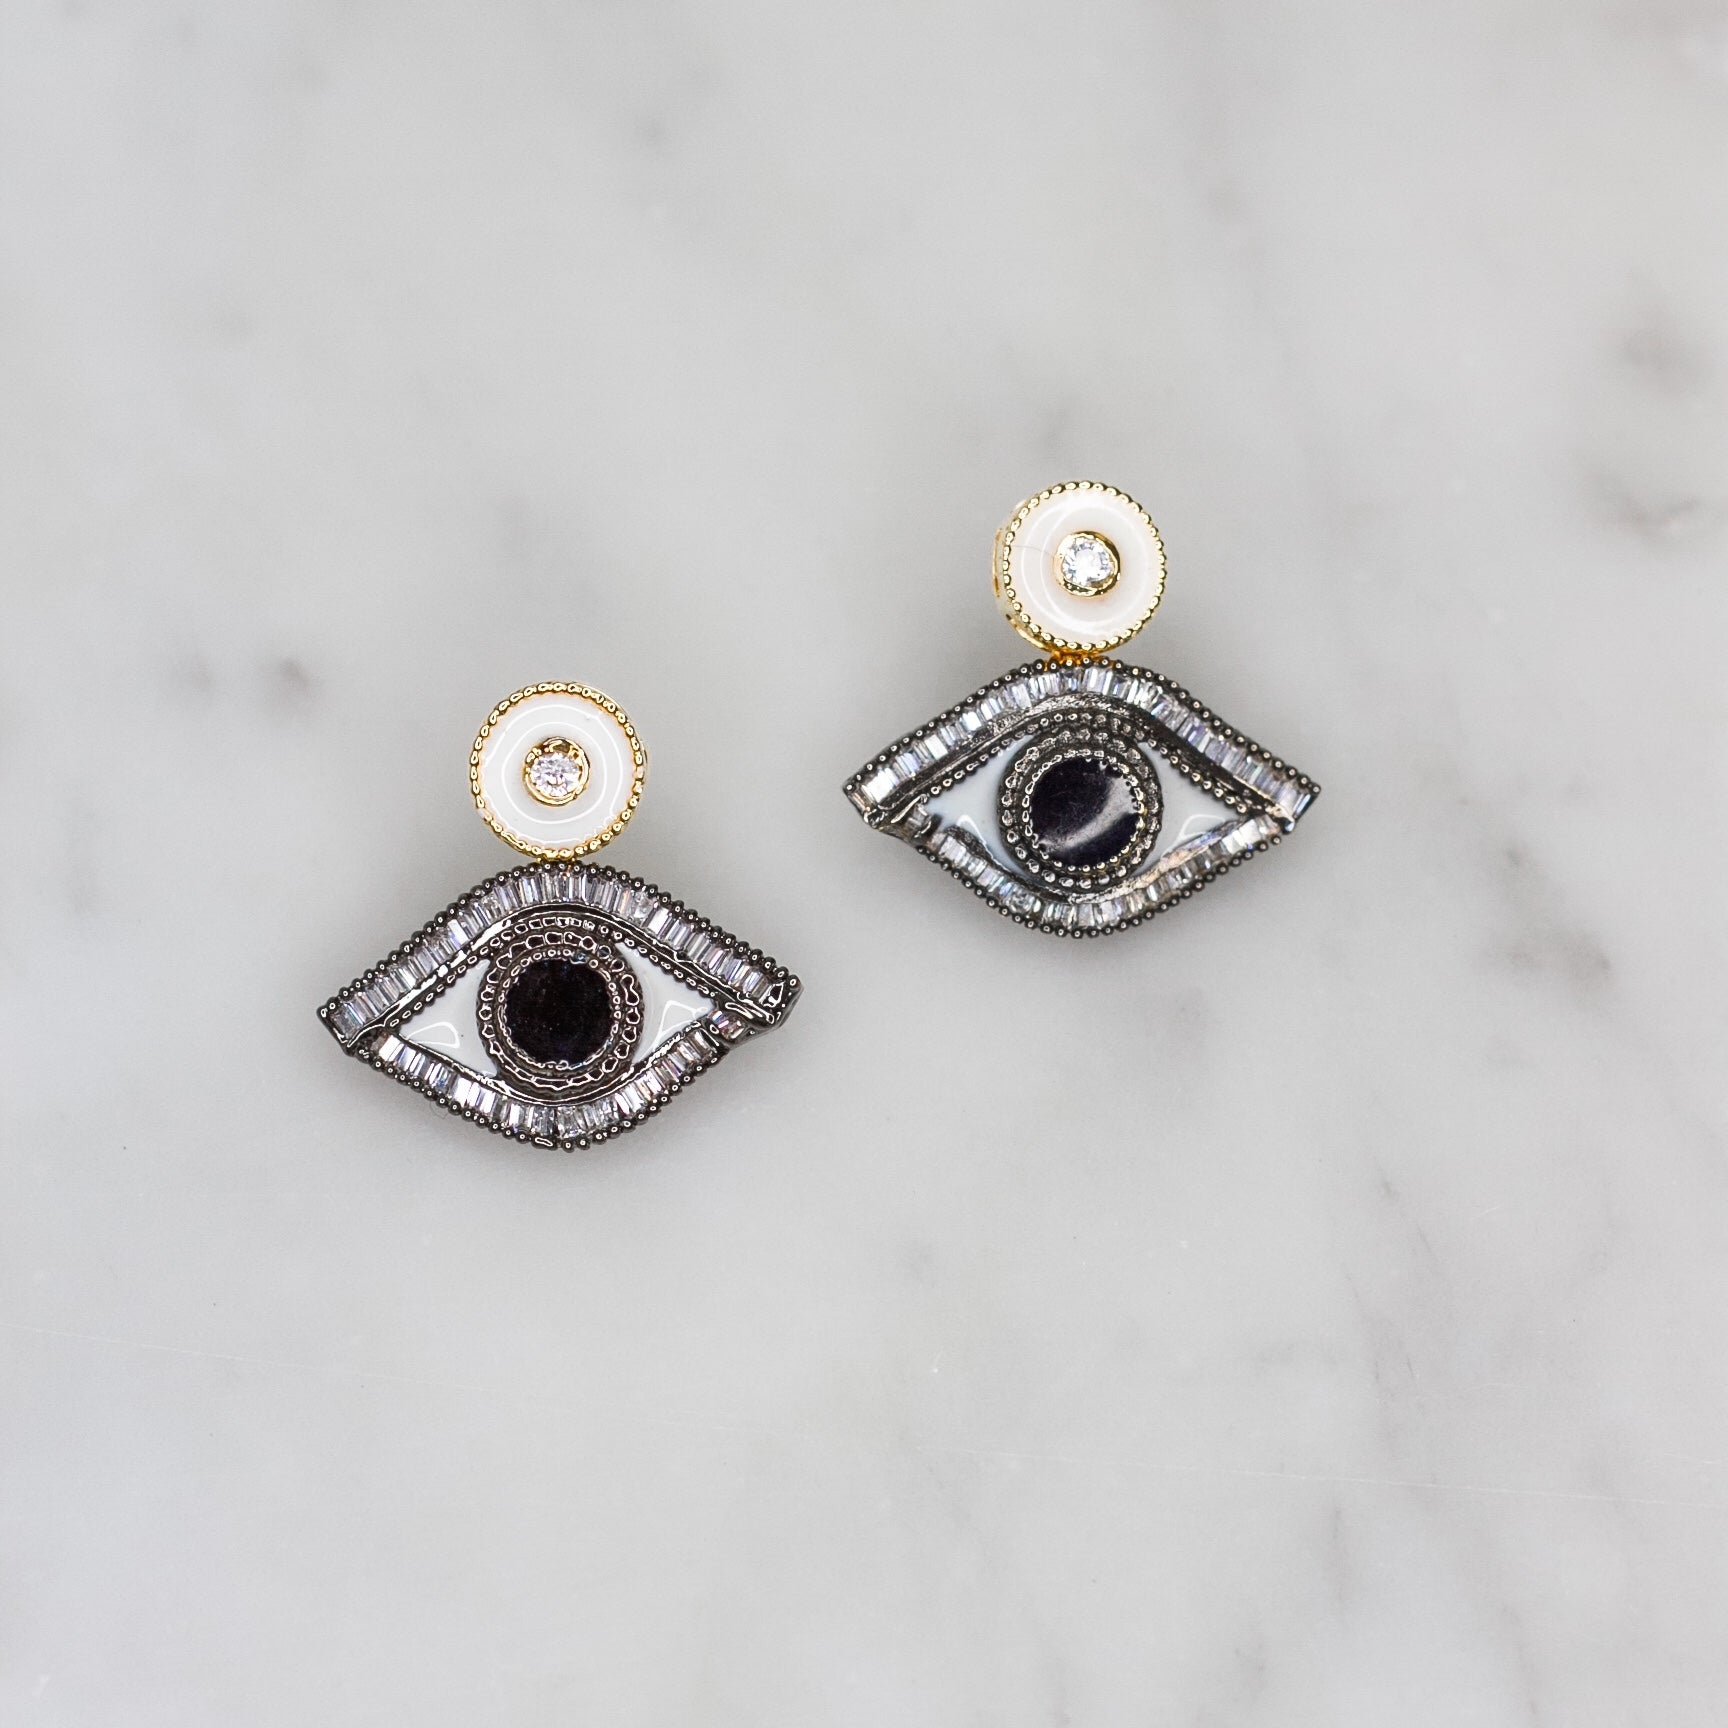 Eye of Protection Earrings